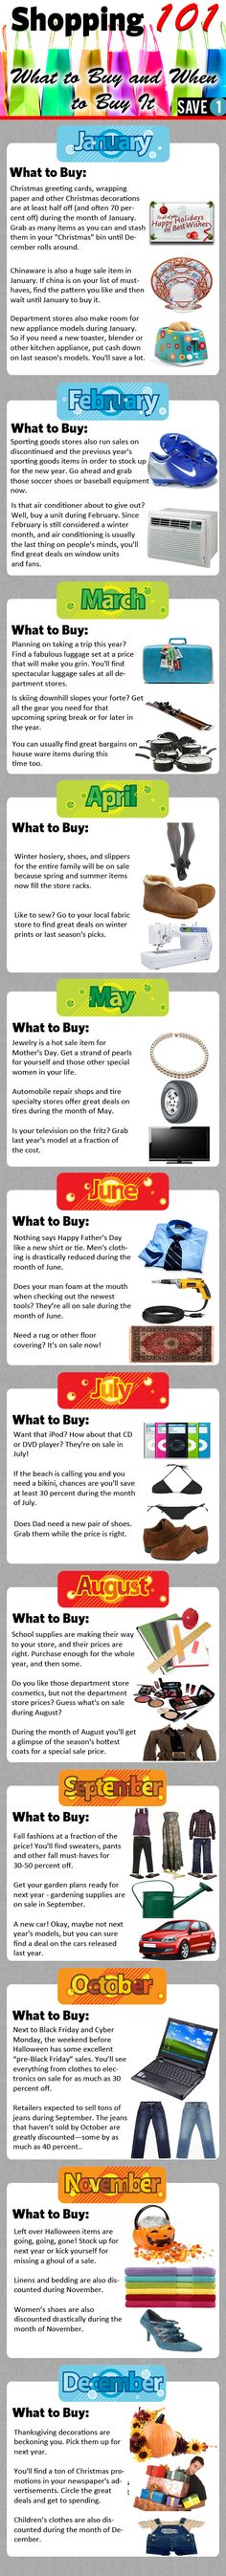 When to buy stuff--great discount info!